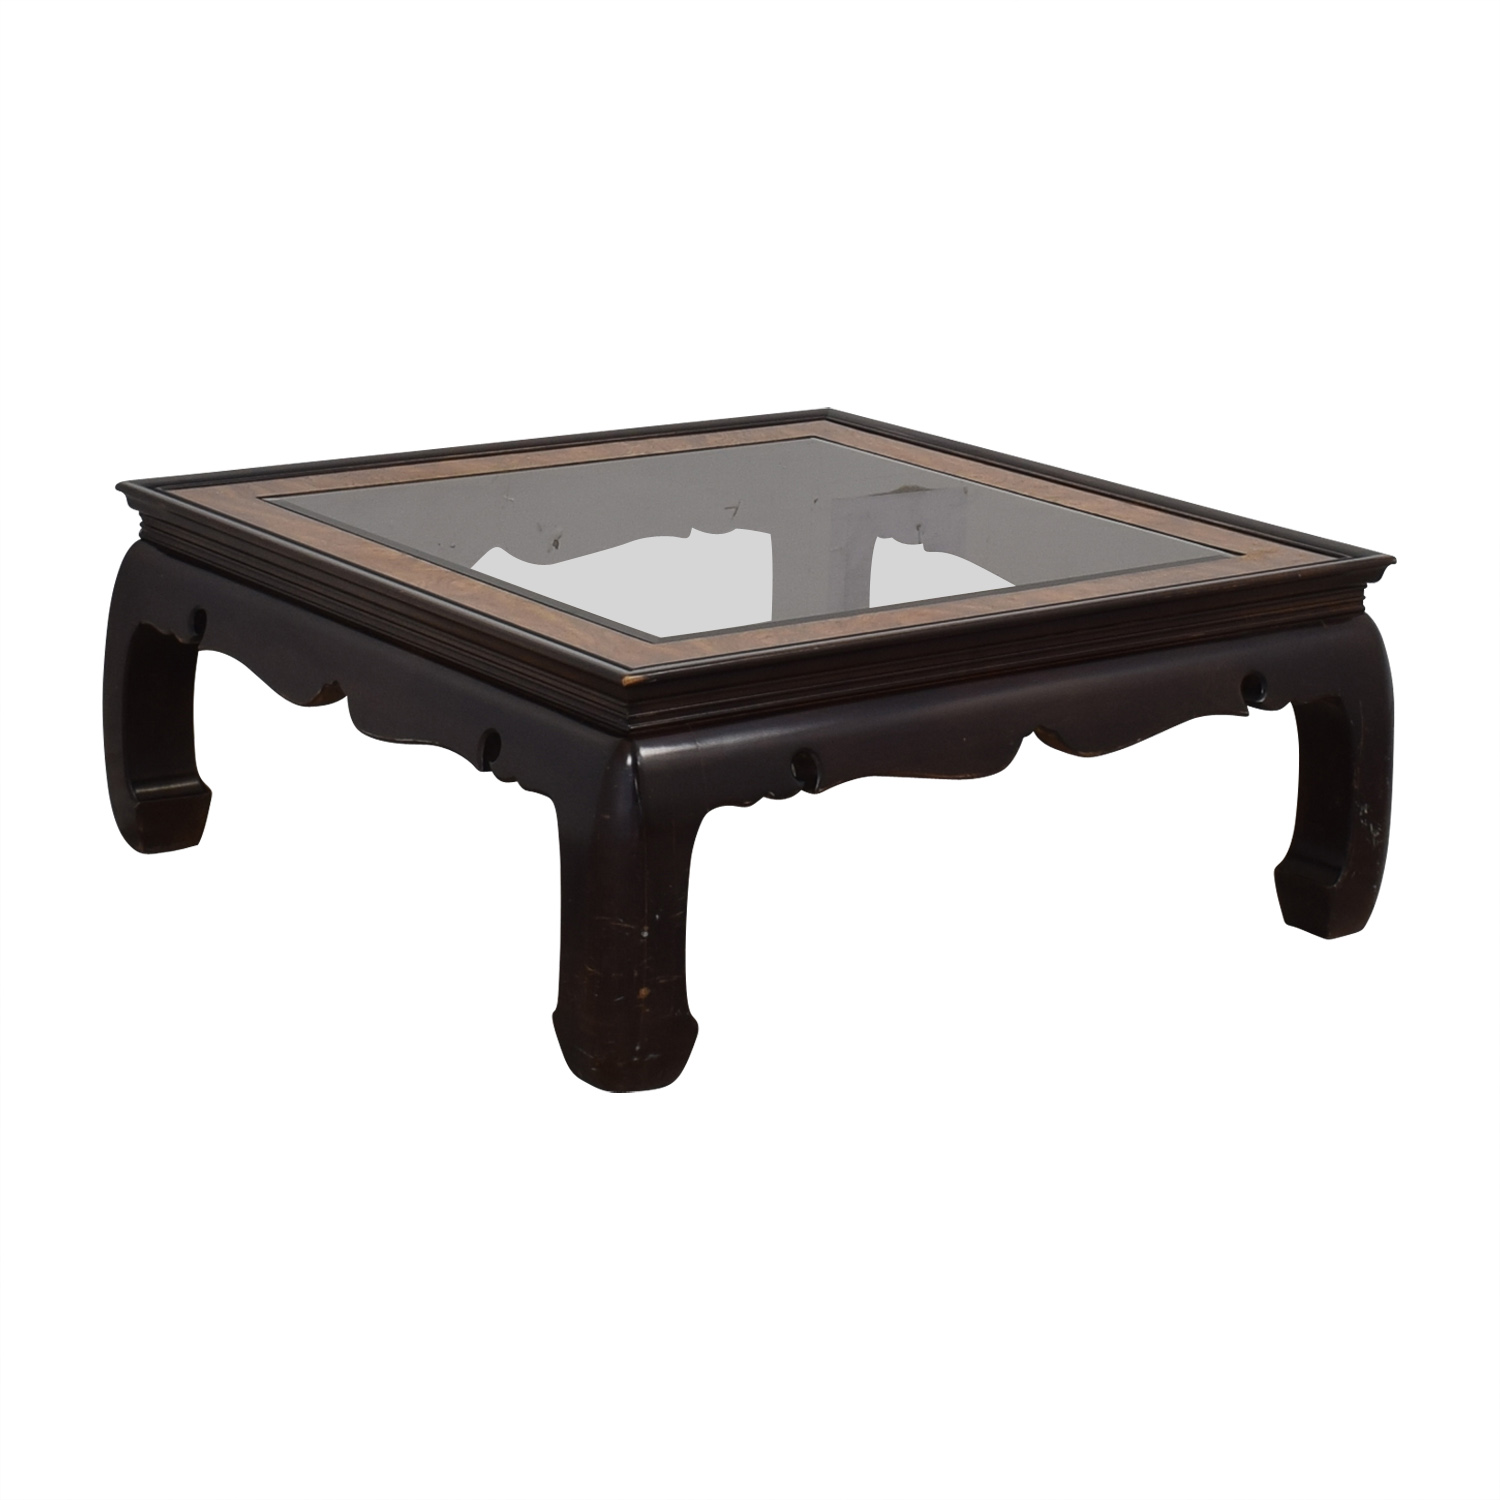 90% OFF   Square Glass And Wood Coffee Table / Tables